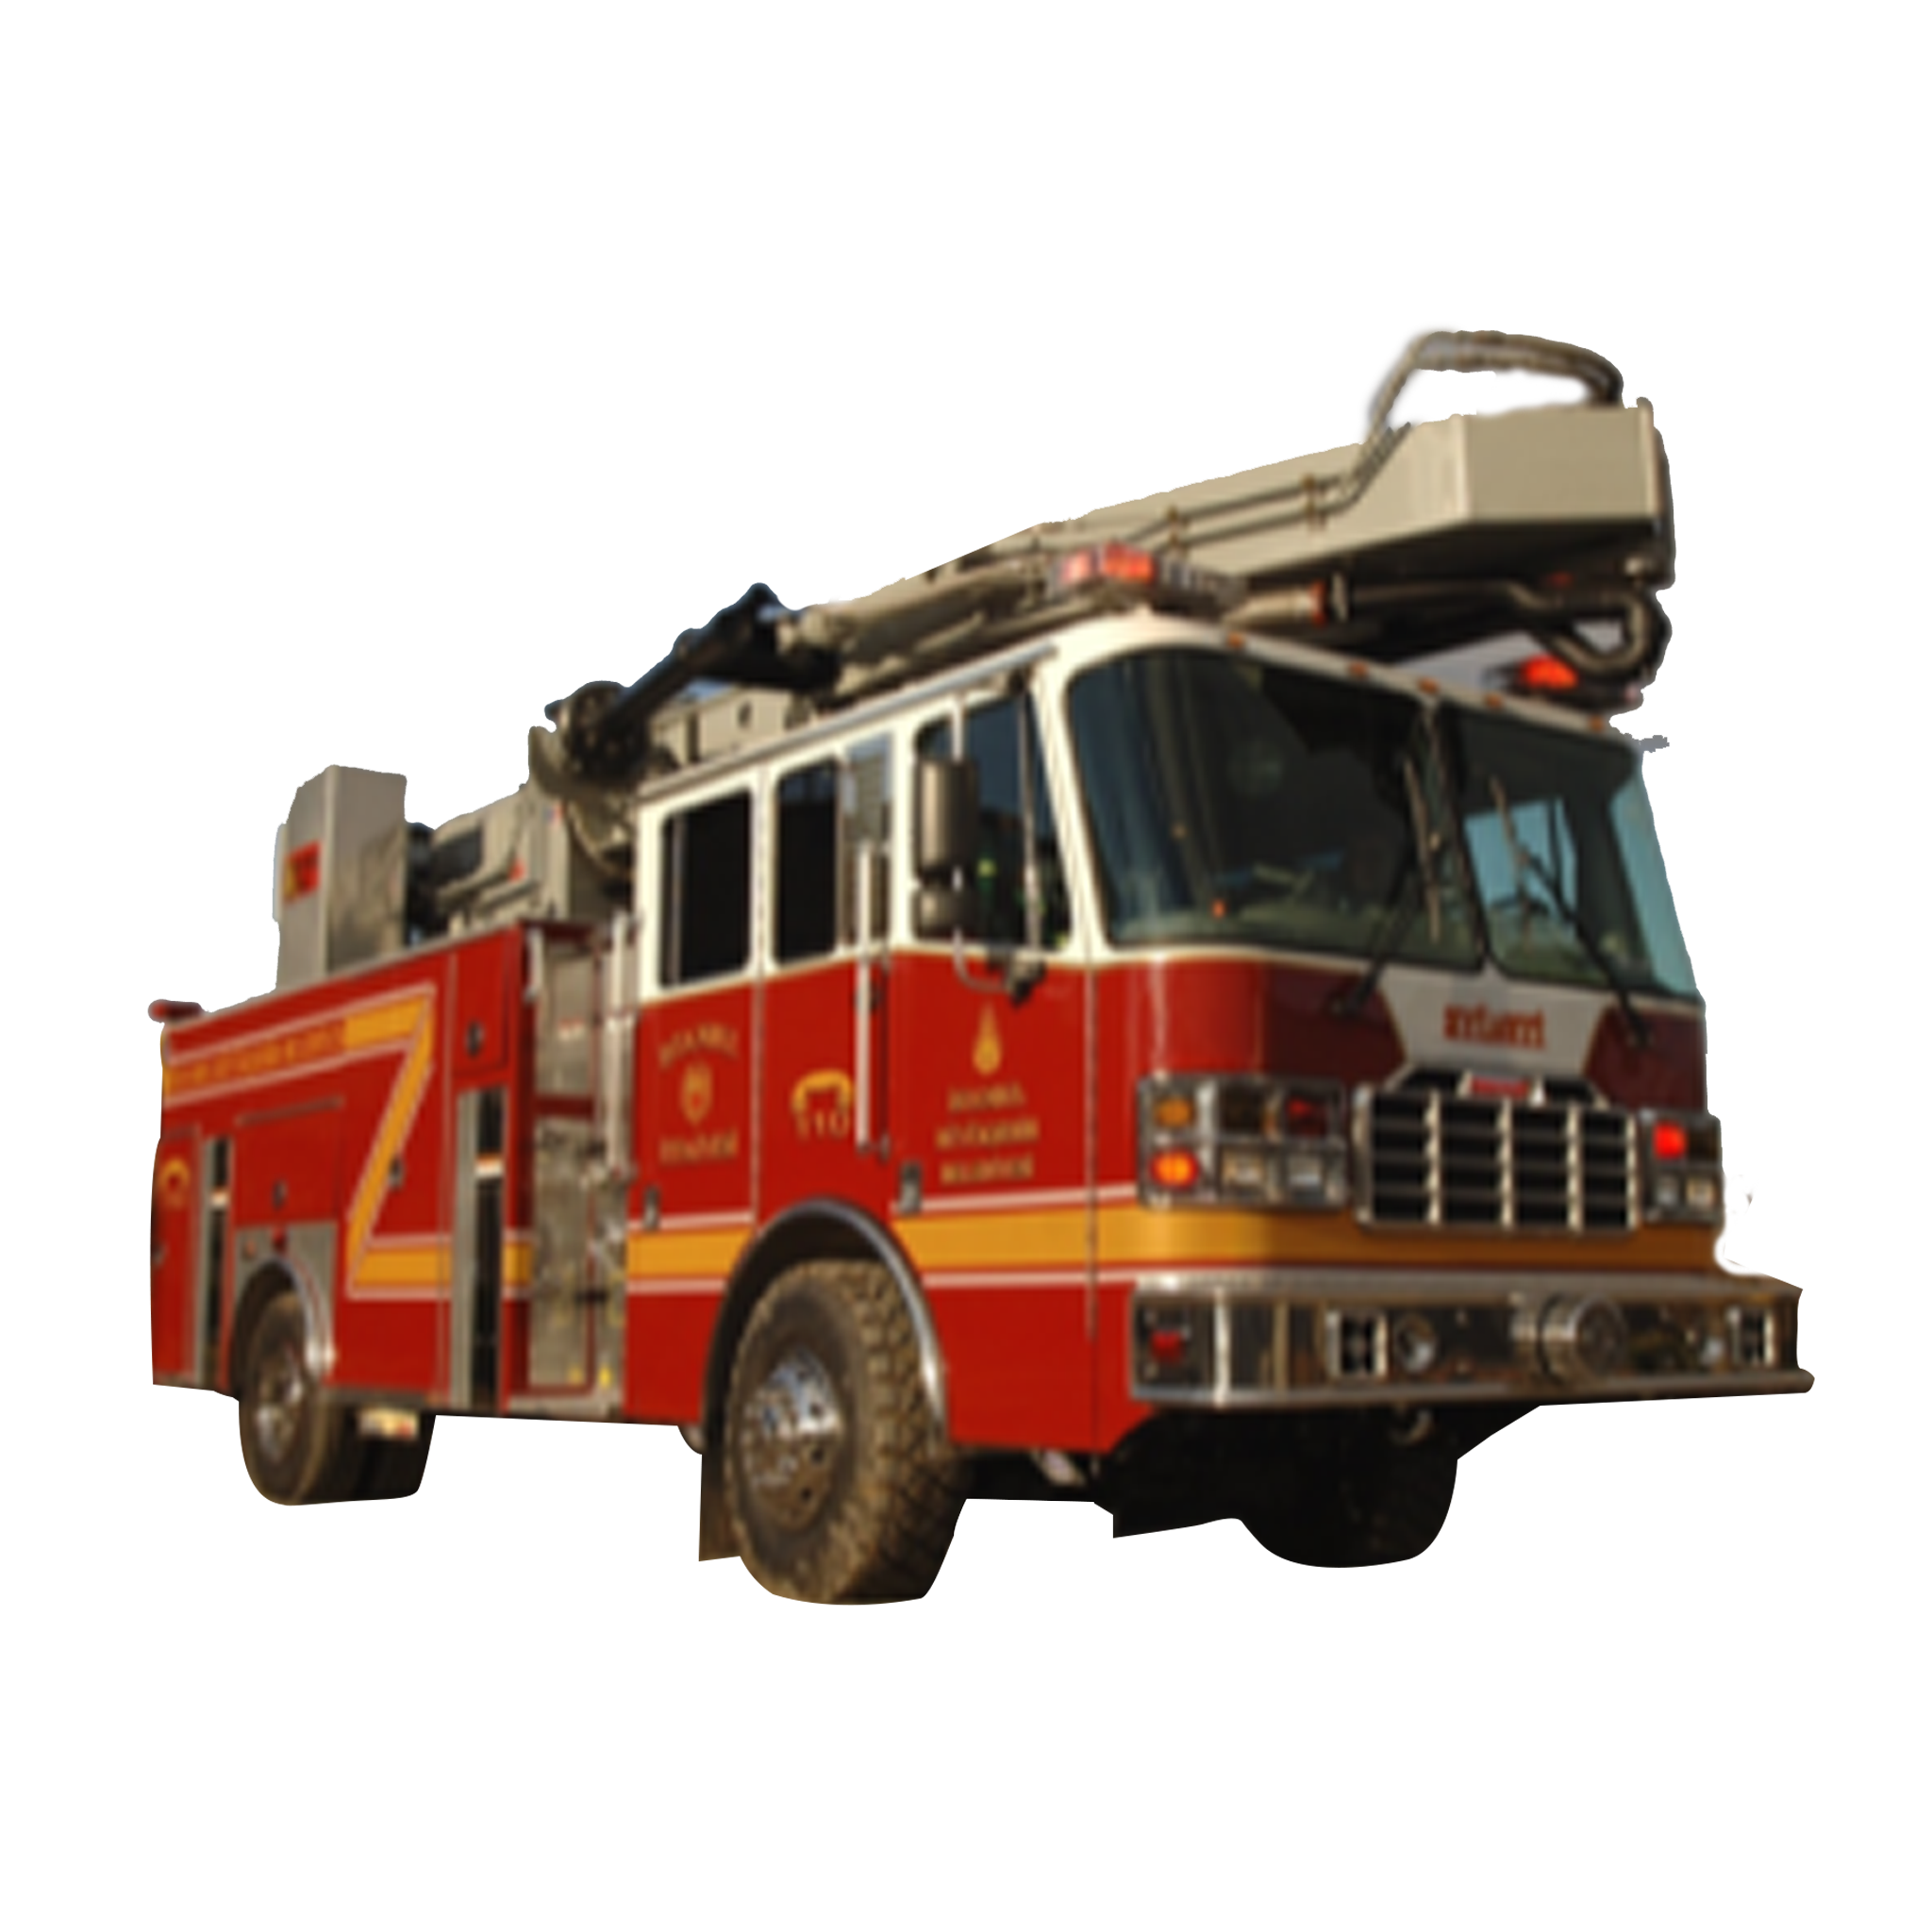 SPECIAL SERVICE FIRE TRUCK